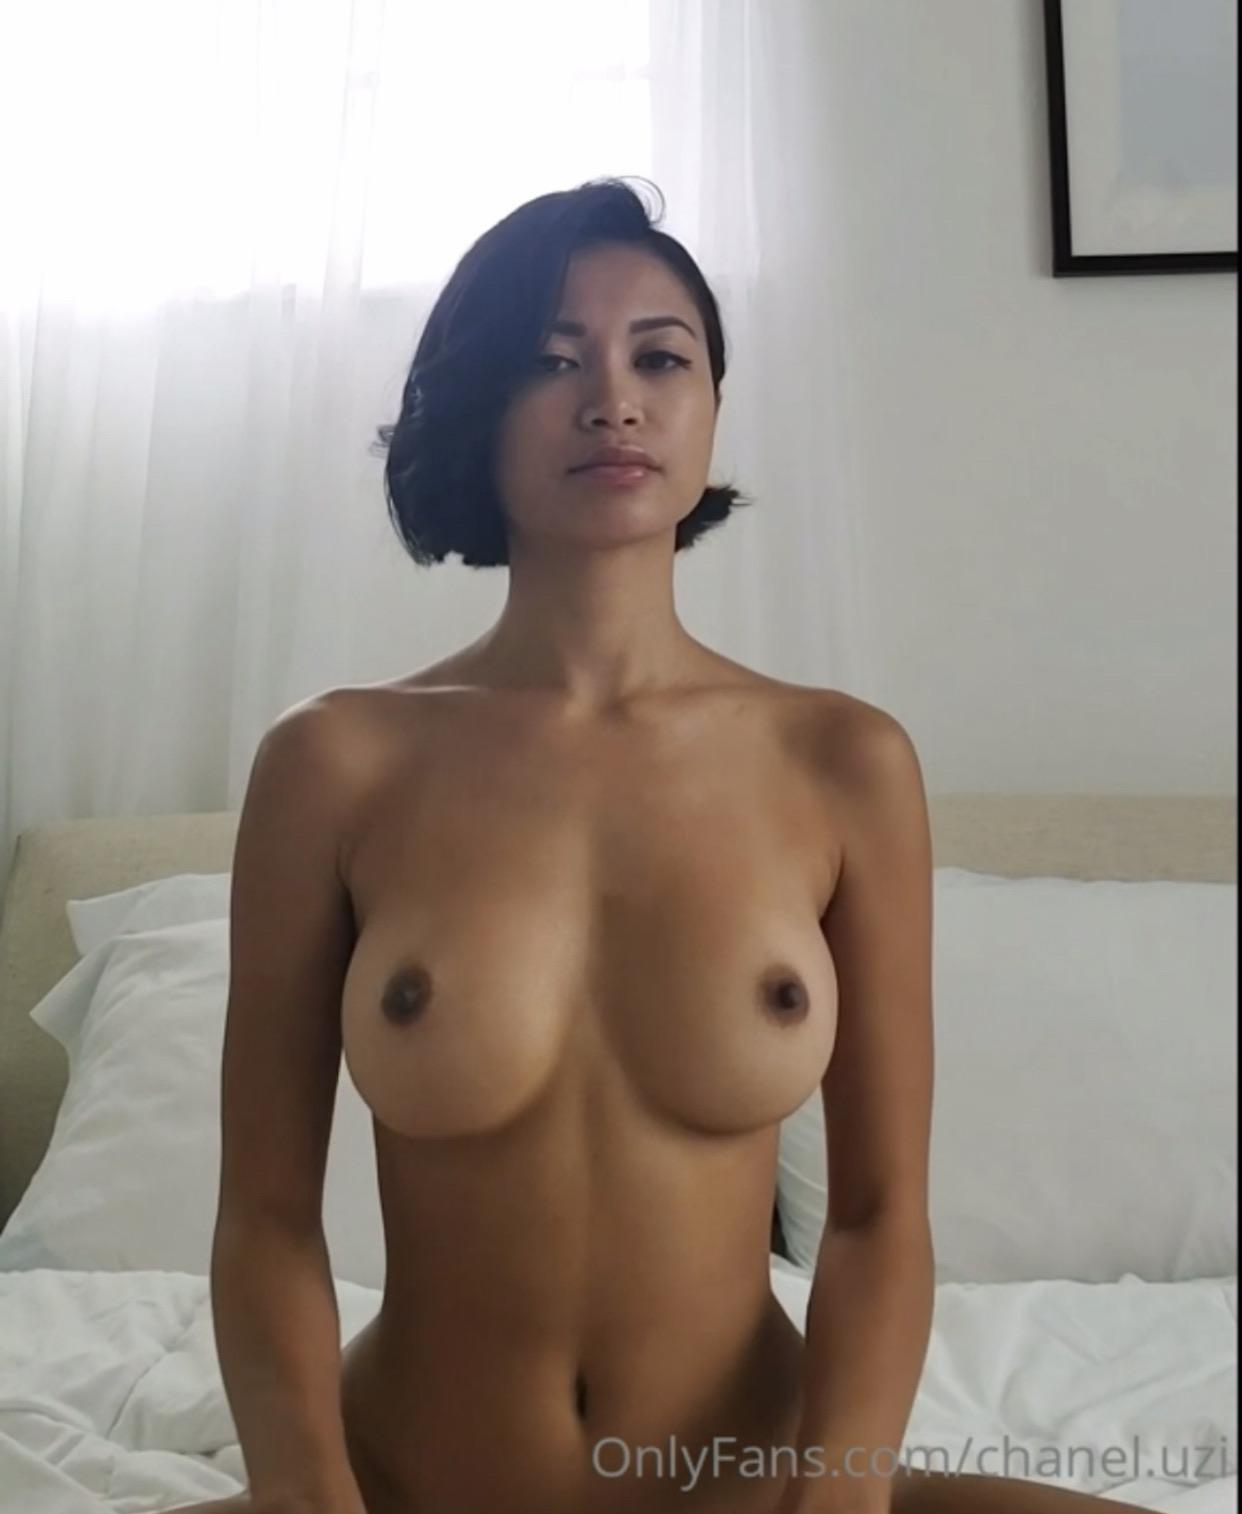 Chanel Uzi Nude Onlyfans Image Gallery Leaked